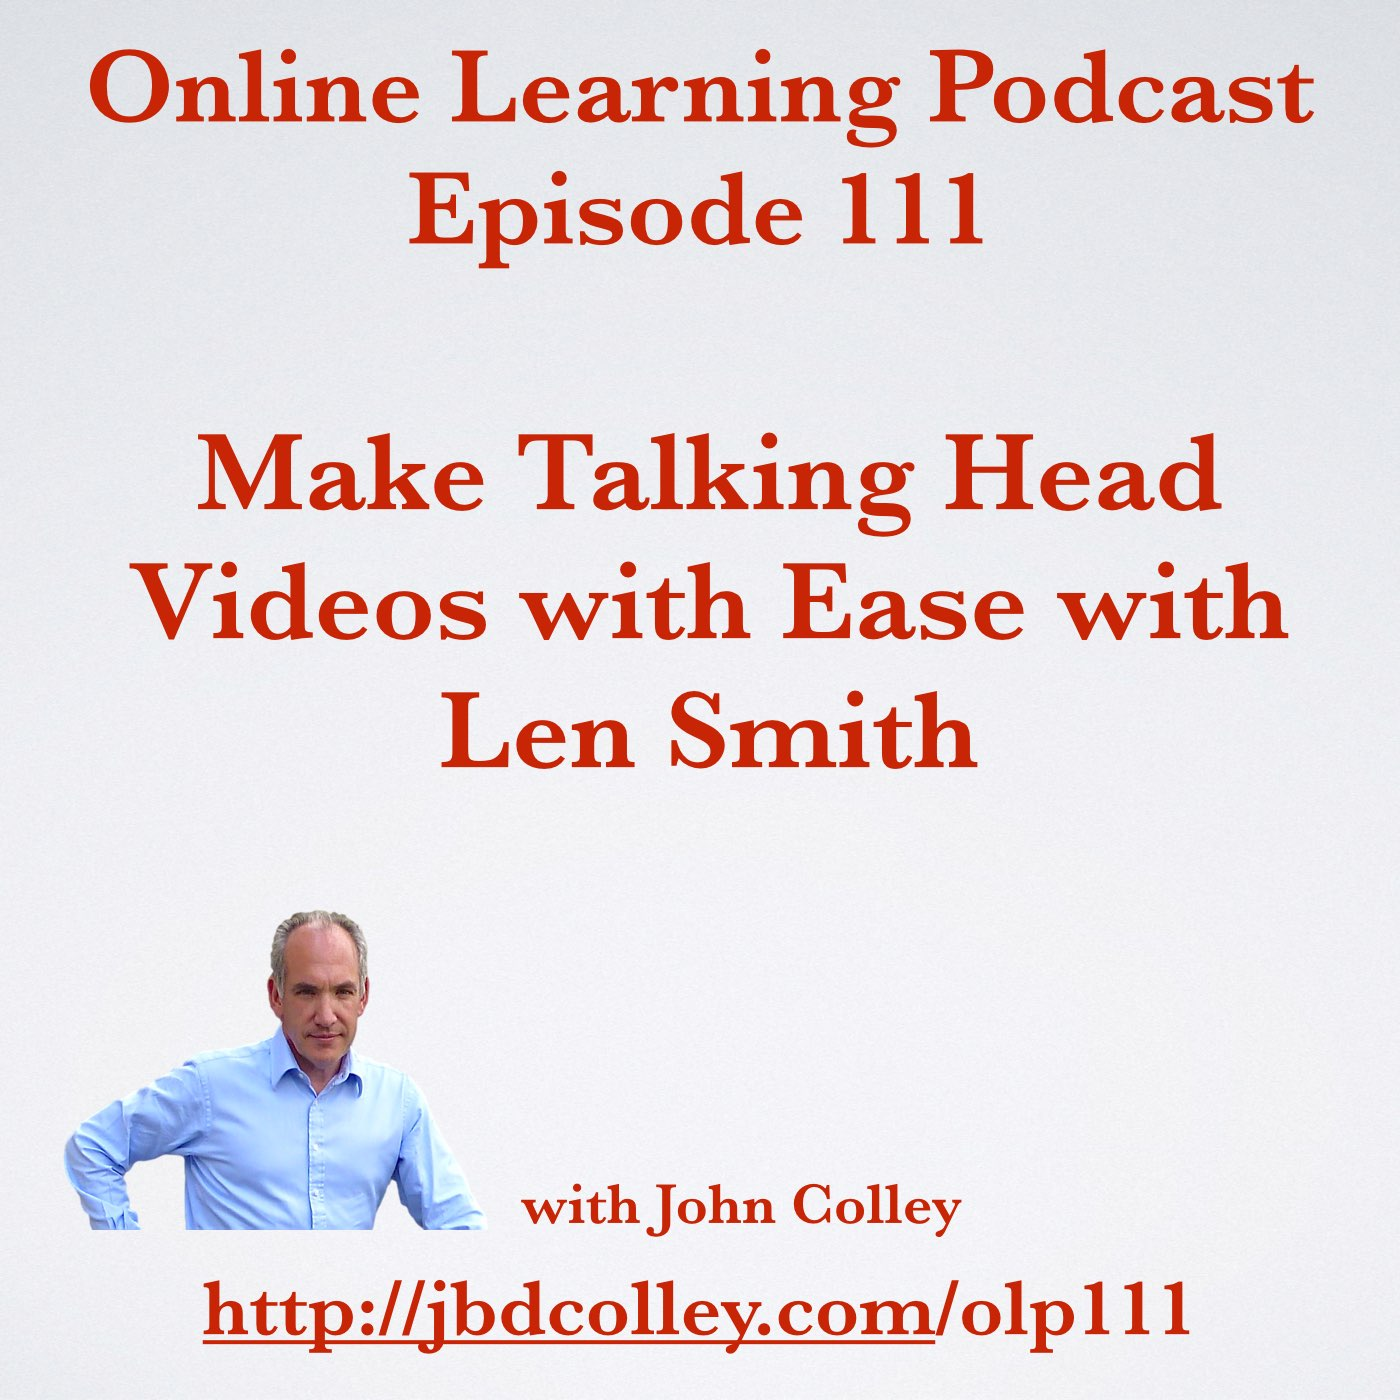 OLP111Make Talking Head Videos with Ease with Len Smith